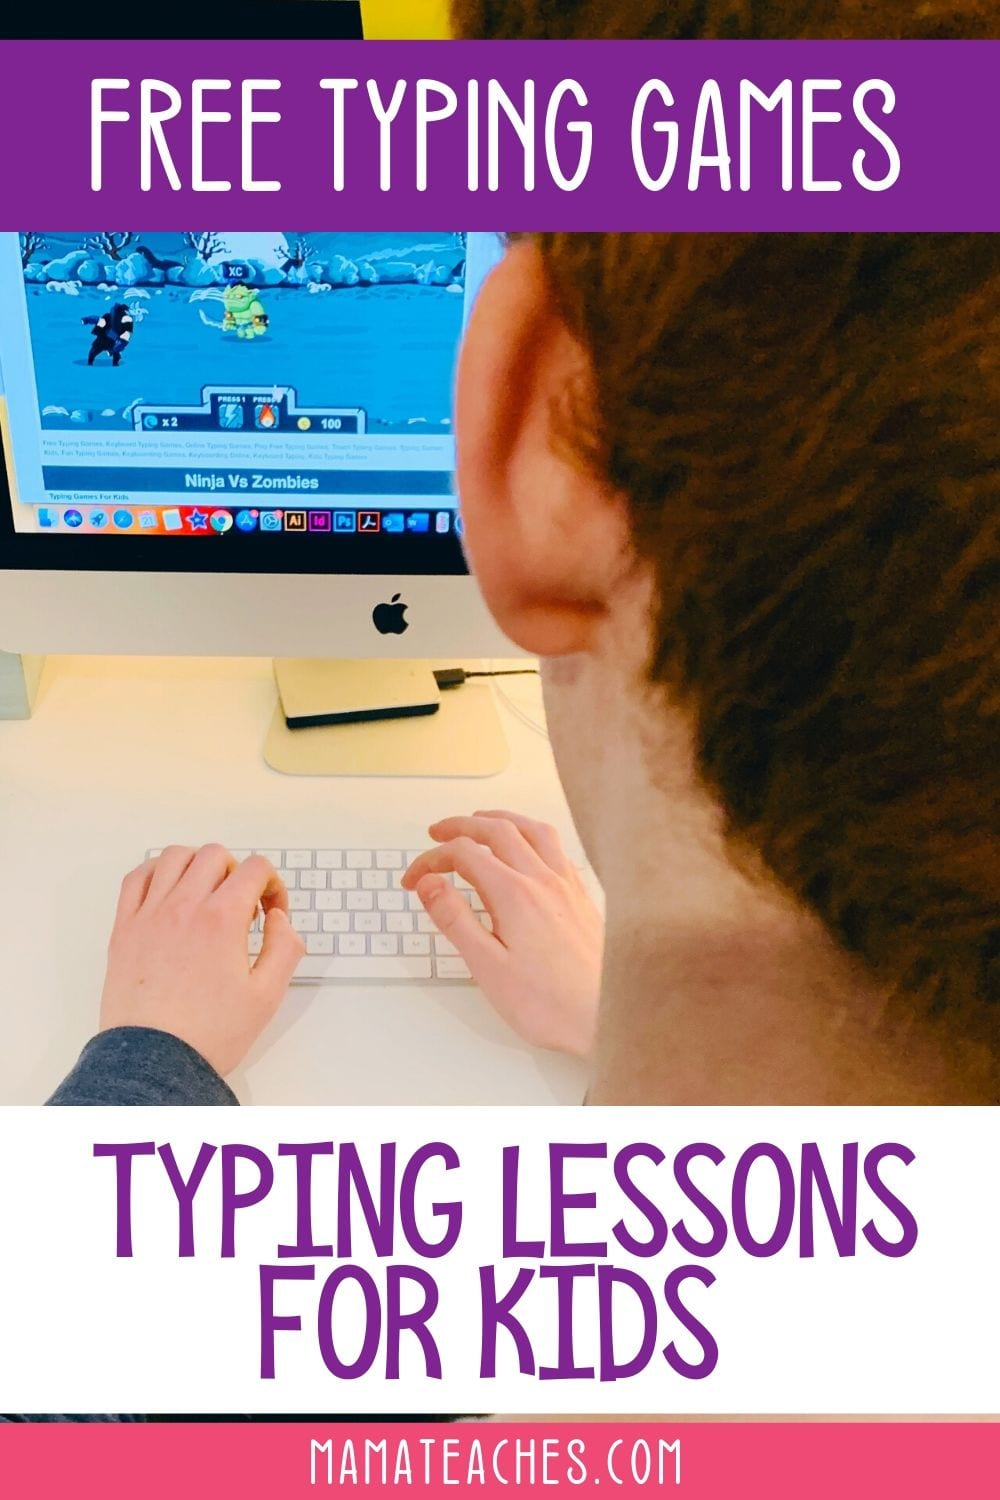 Free Typing Games - Typing Lessons for Kids - MamaTeaches.com